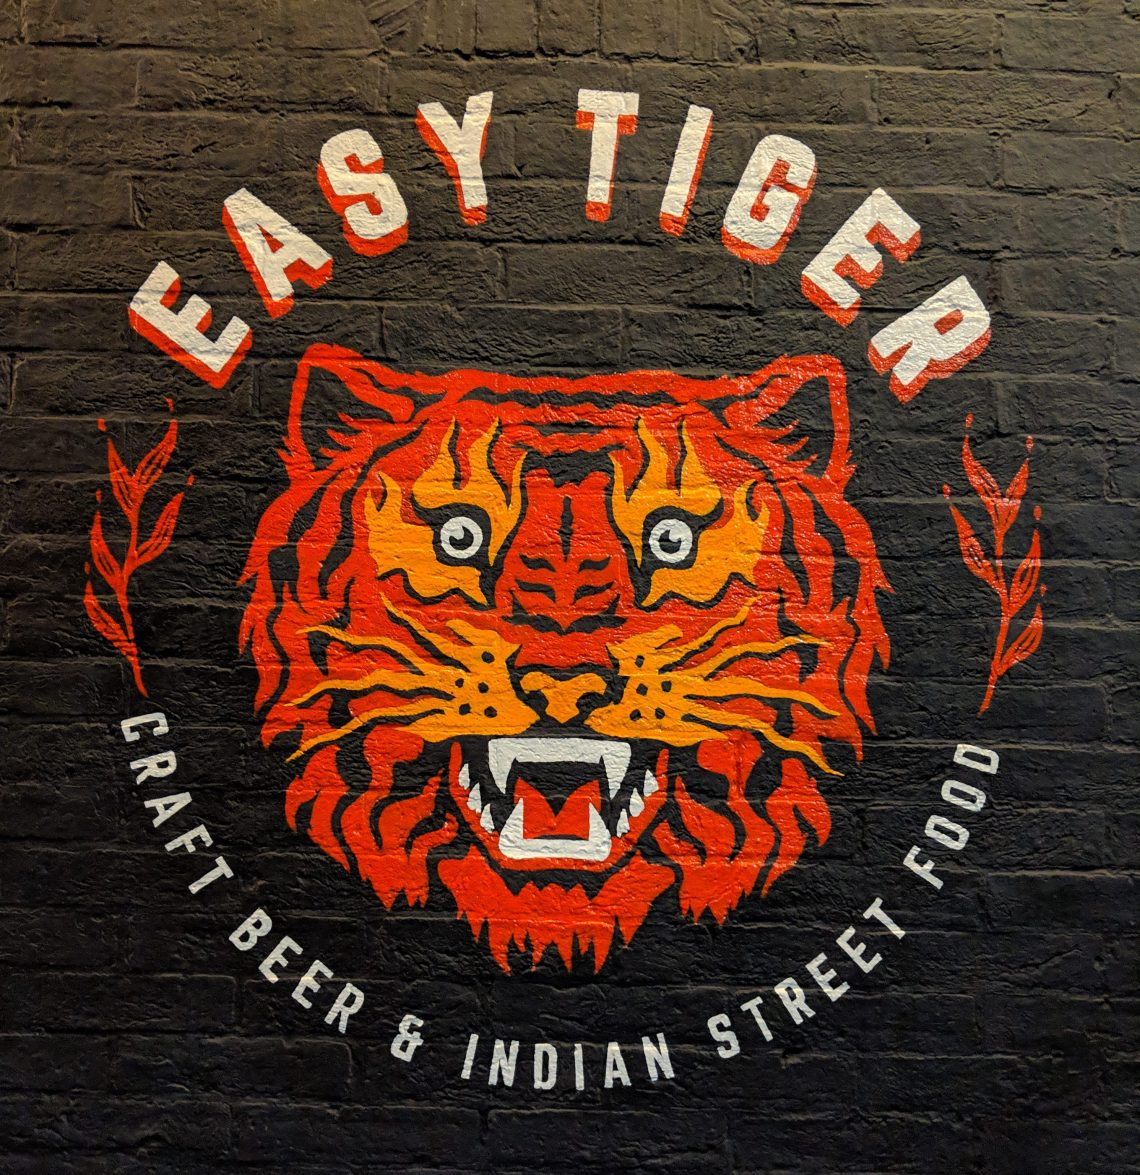 easy tiger at the hampton close up of logo outside on building